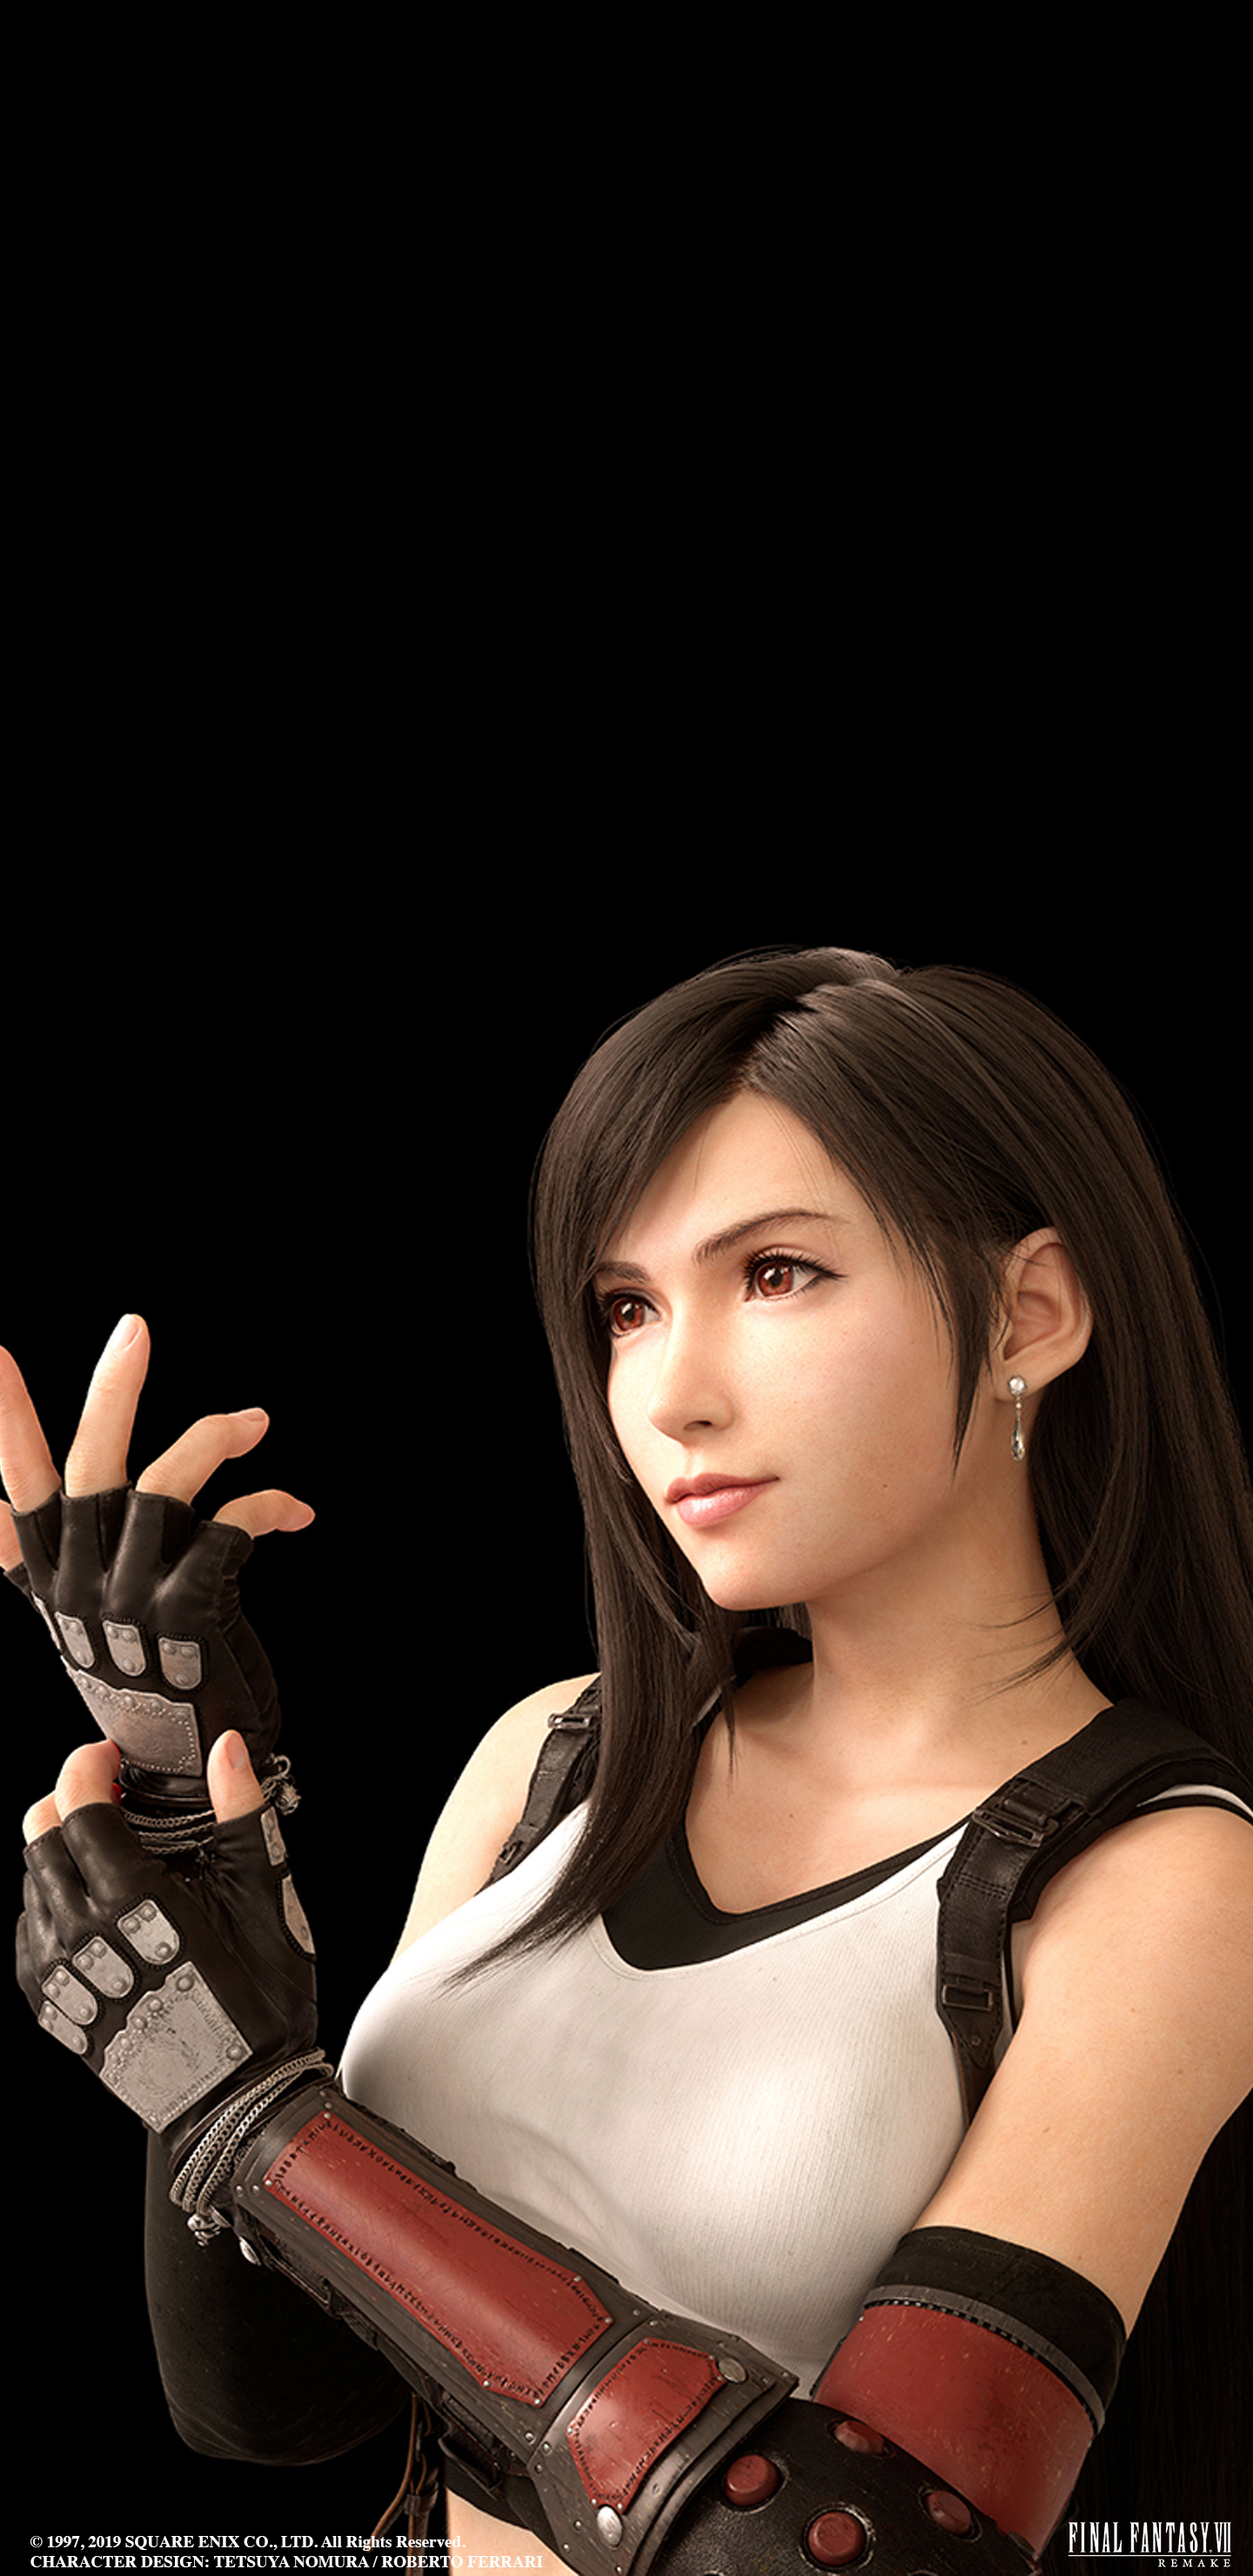 Final Fantasy Vii Remake Tifa Wallpaper Cat With Monocle